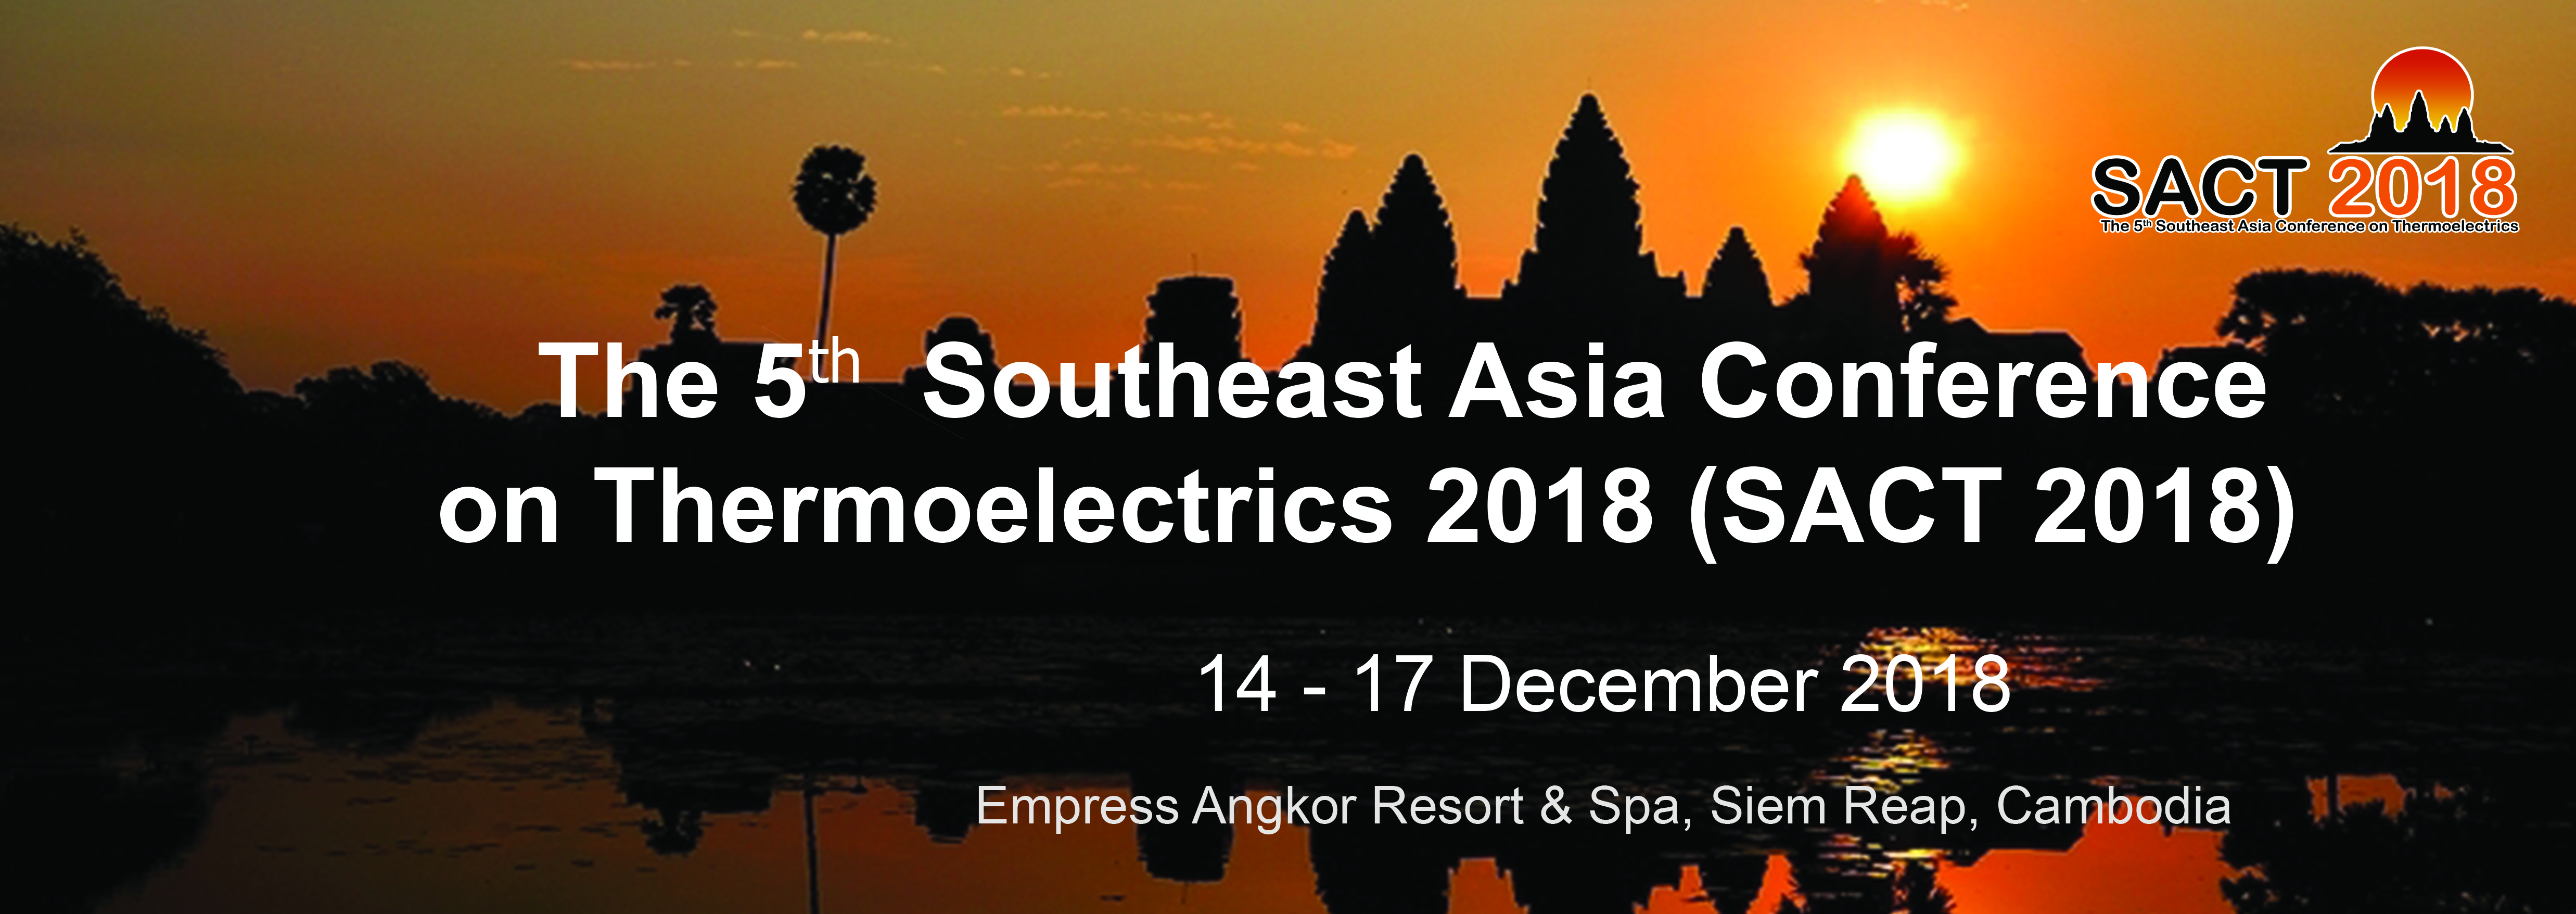 Conference Venue :Empress Angkor Resort & Spa, Siem Reap, Cambodia